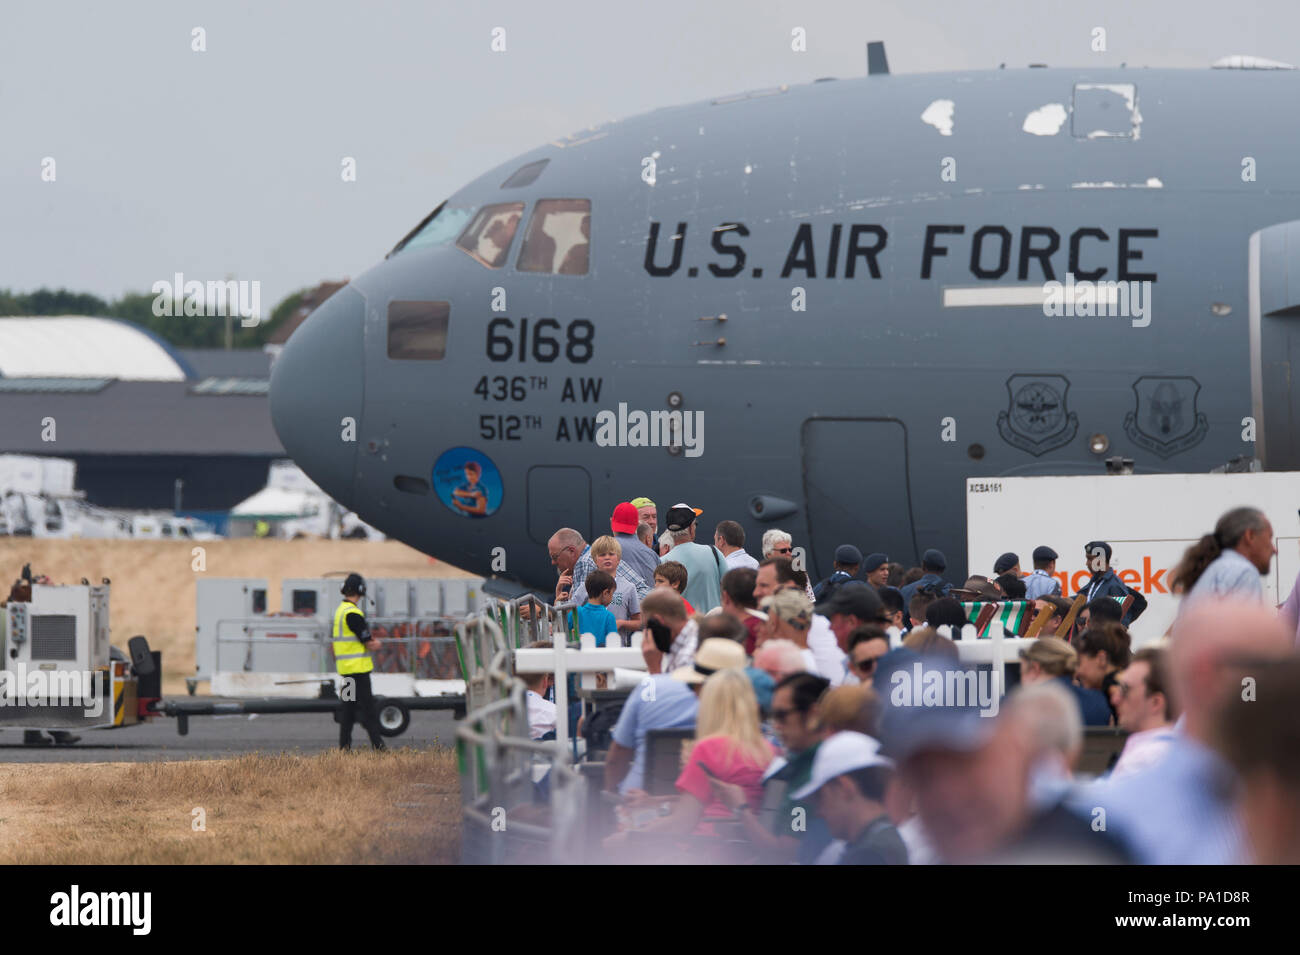 Farnborough, Hampshire, UK. 20 July, 2018. Final day of the biennial Farnborough International Trade Airshow FIA2018, typically a transition day as business customers leave in VIP jets and members of the public arrive to watch the build-up for the weekend public airshow. A large Boeing C-17 Globemaster III military transport aircraft of the US Air Force parks up, towering over spectators Credit: Malcolm Park/Alamy Live News. - Stock Image